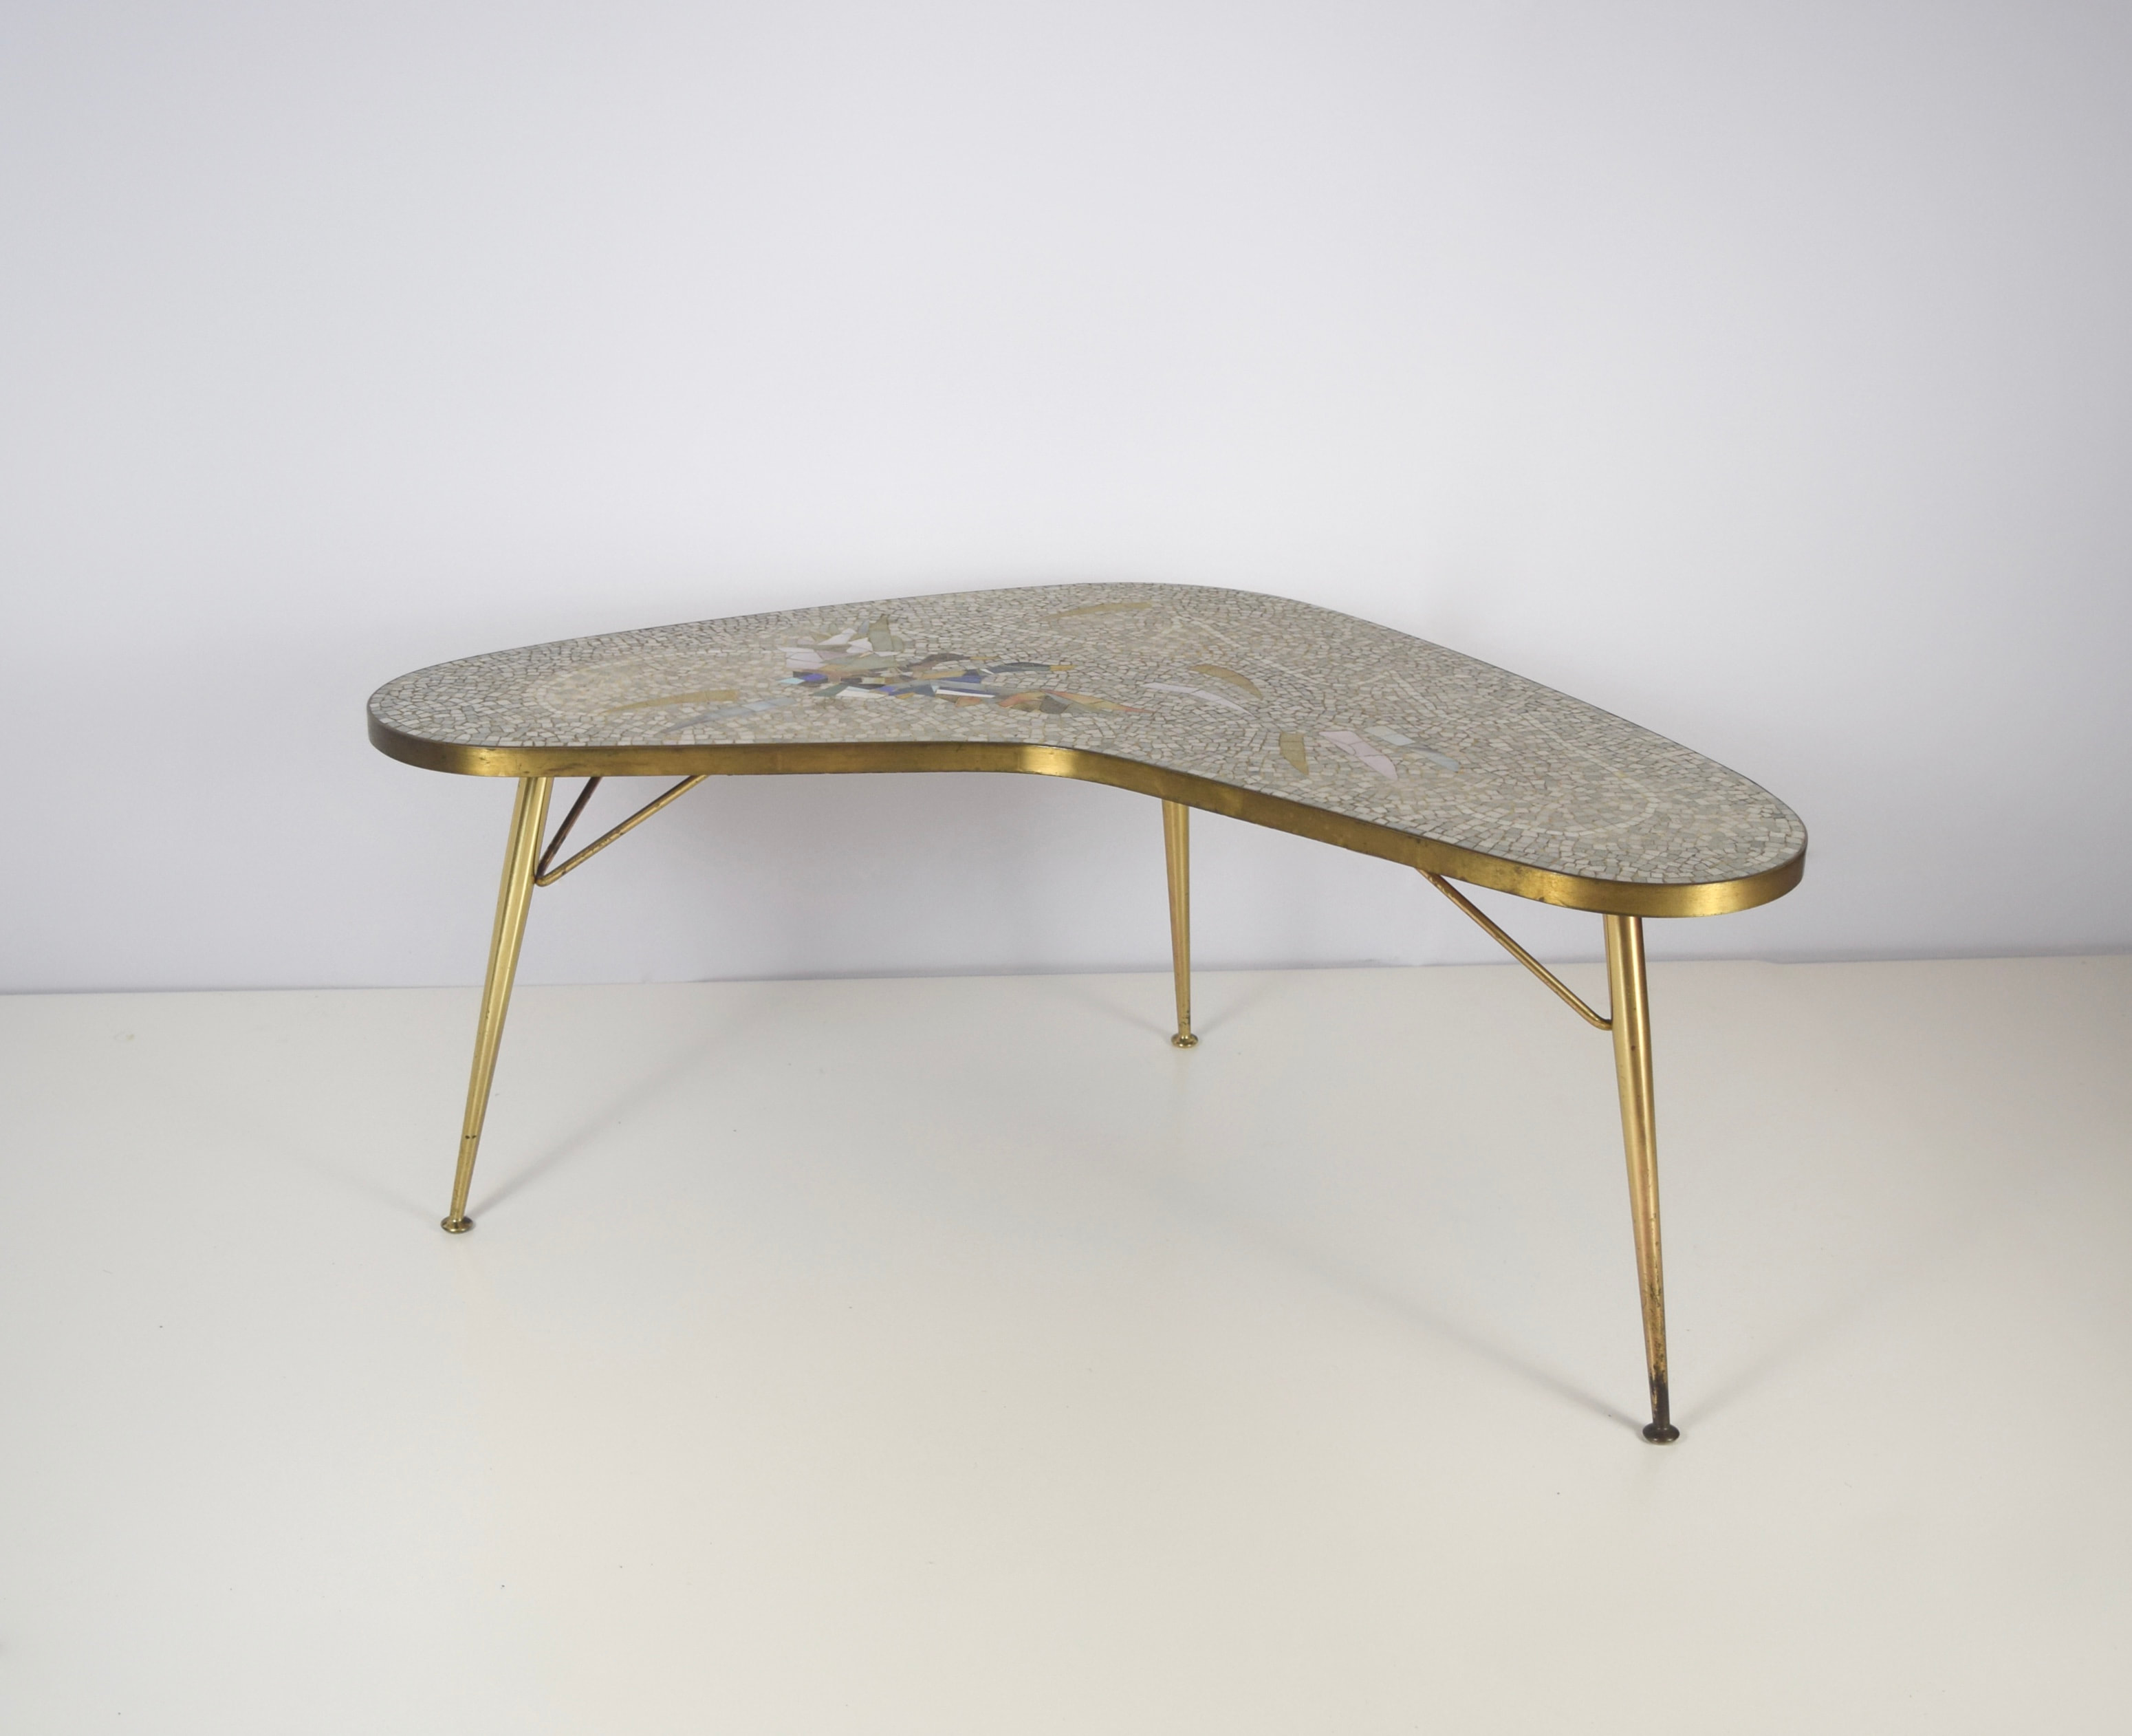 Mosaic and Brass Coffee Table by Berthold Müller-Oerlinghausen, Germany 1950's